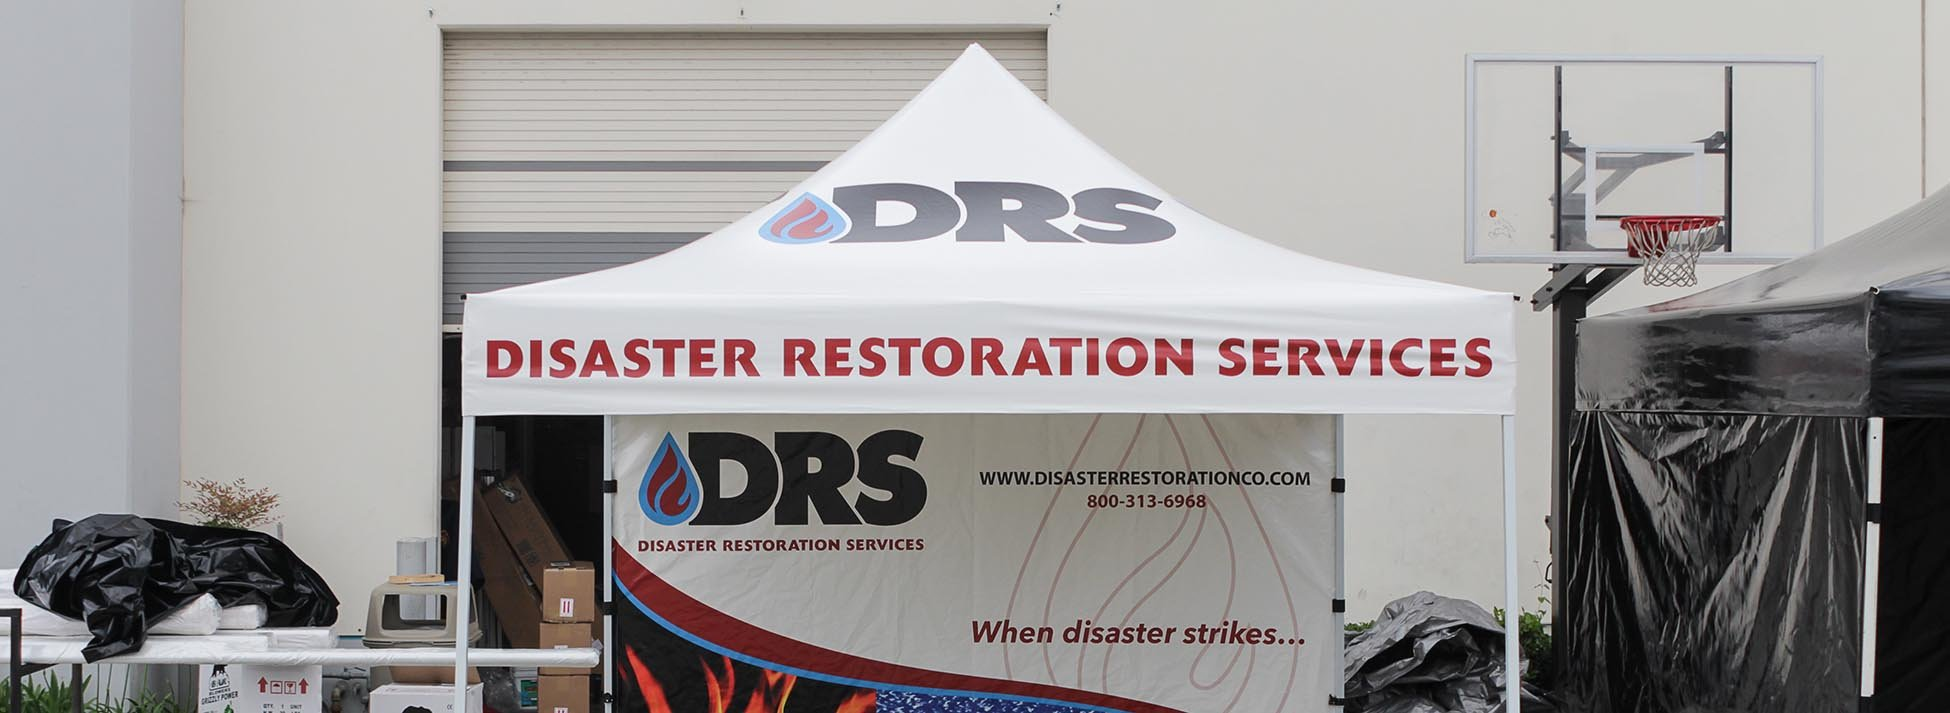 disaster-restoration-services-header.jpg